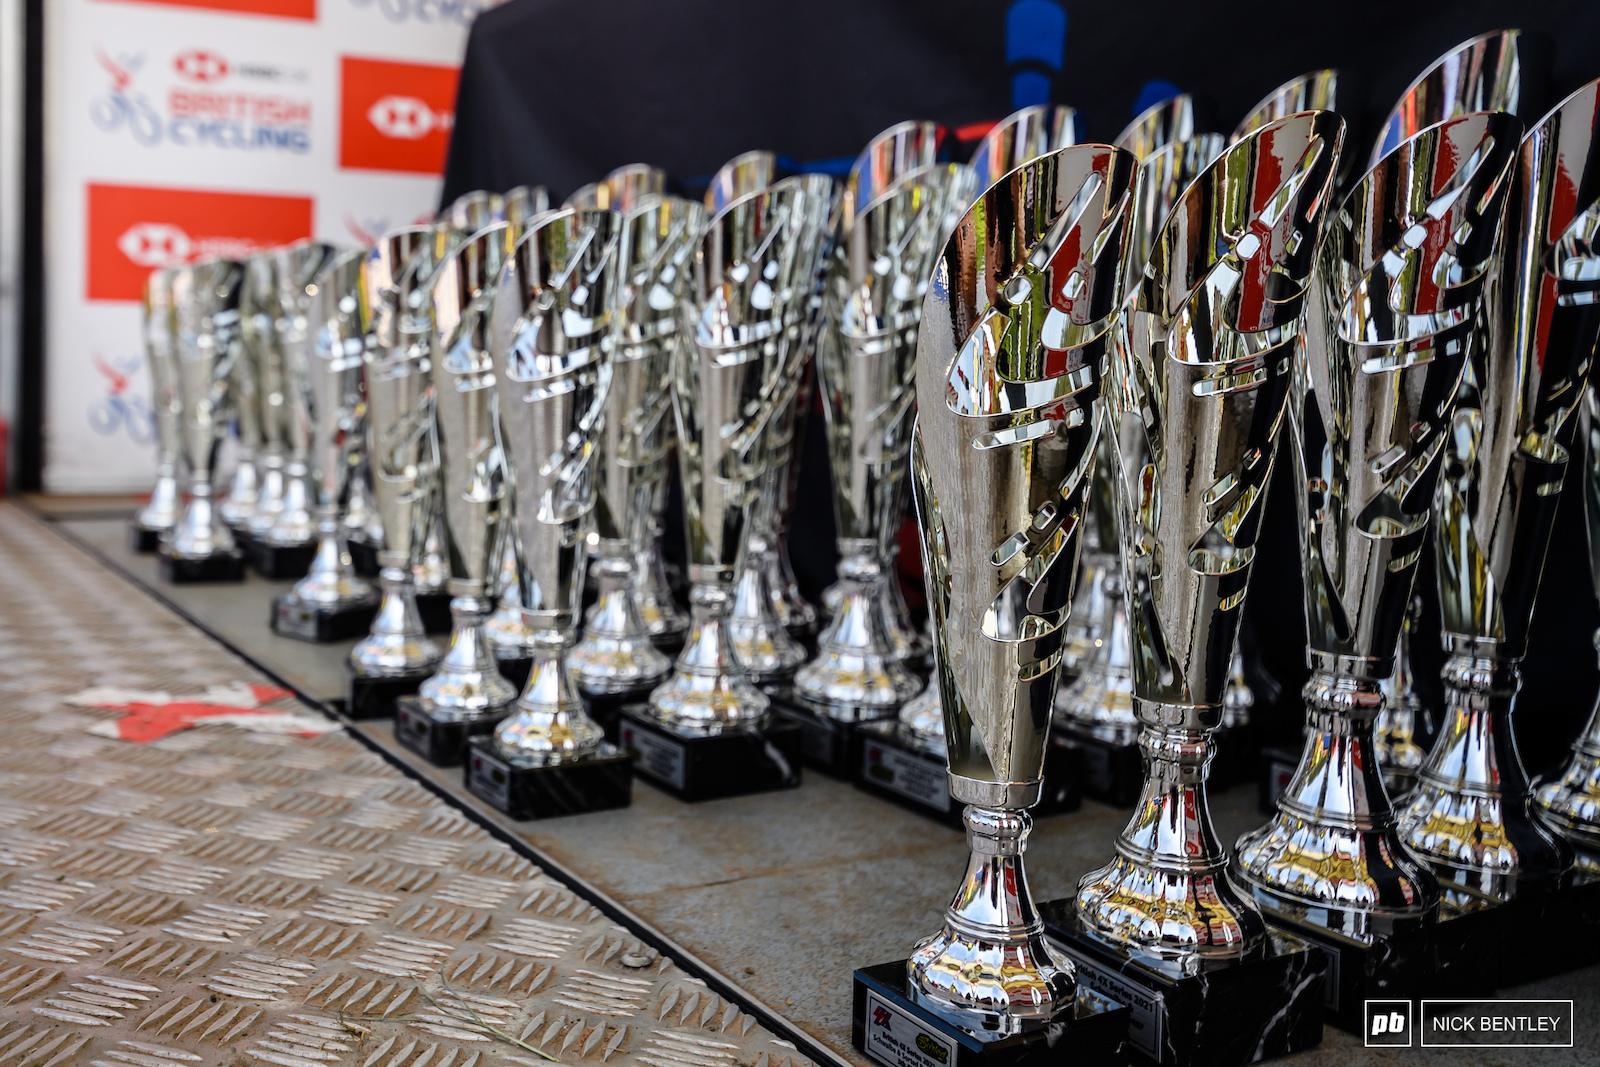 Lots of shiny trophies ready for the series winners. Hats off to Chris Roberts and the team at Naked Racing they put on an amazing series once again